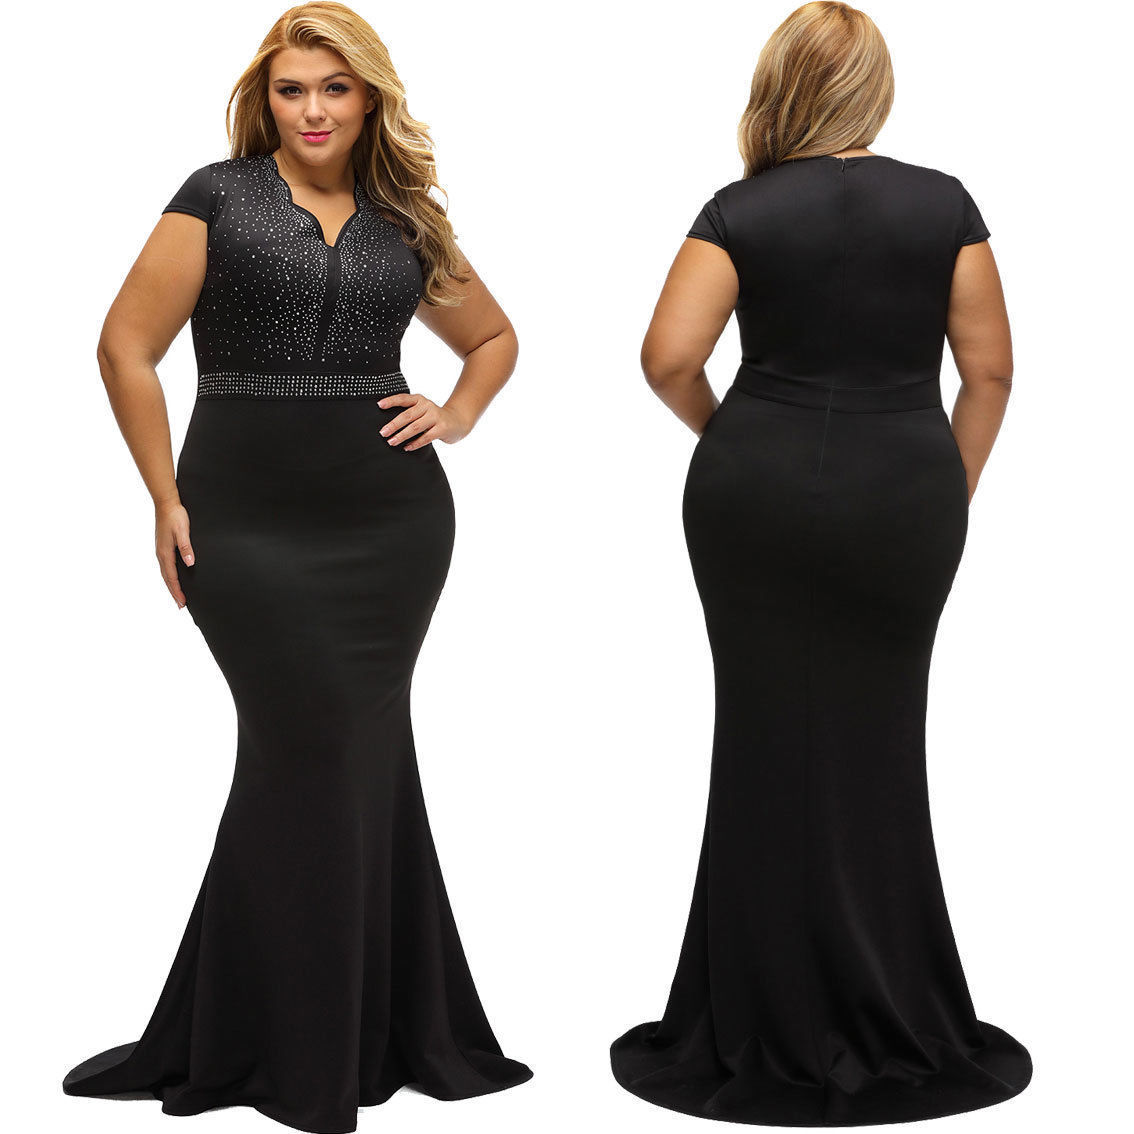 bdf889e5787 Amazing US Plus Size Women Bridesmaid Ball Gown Prom Evening Party Cocktail  Maxi Dress 2019